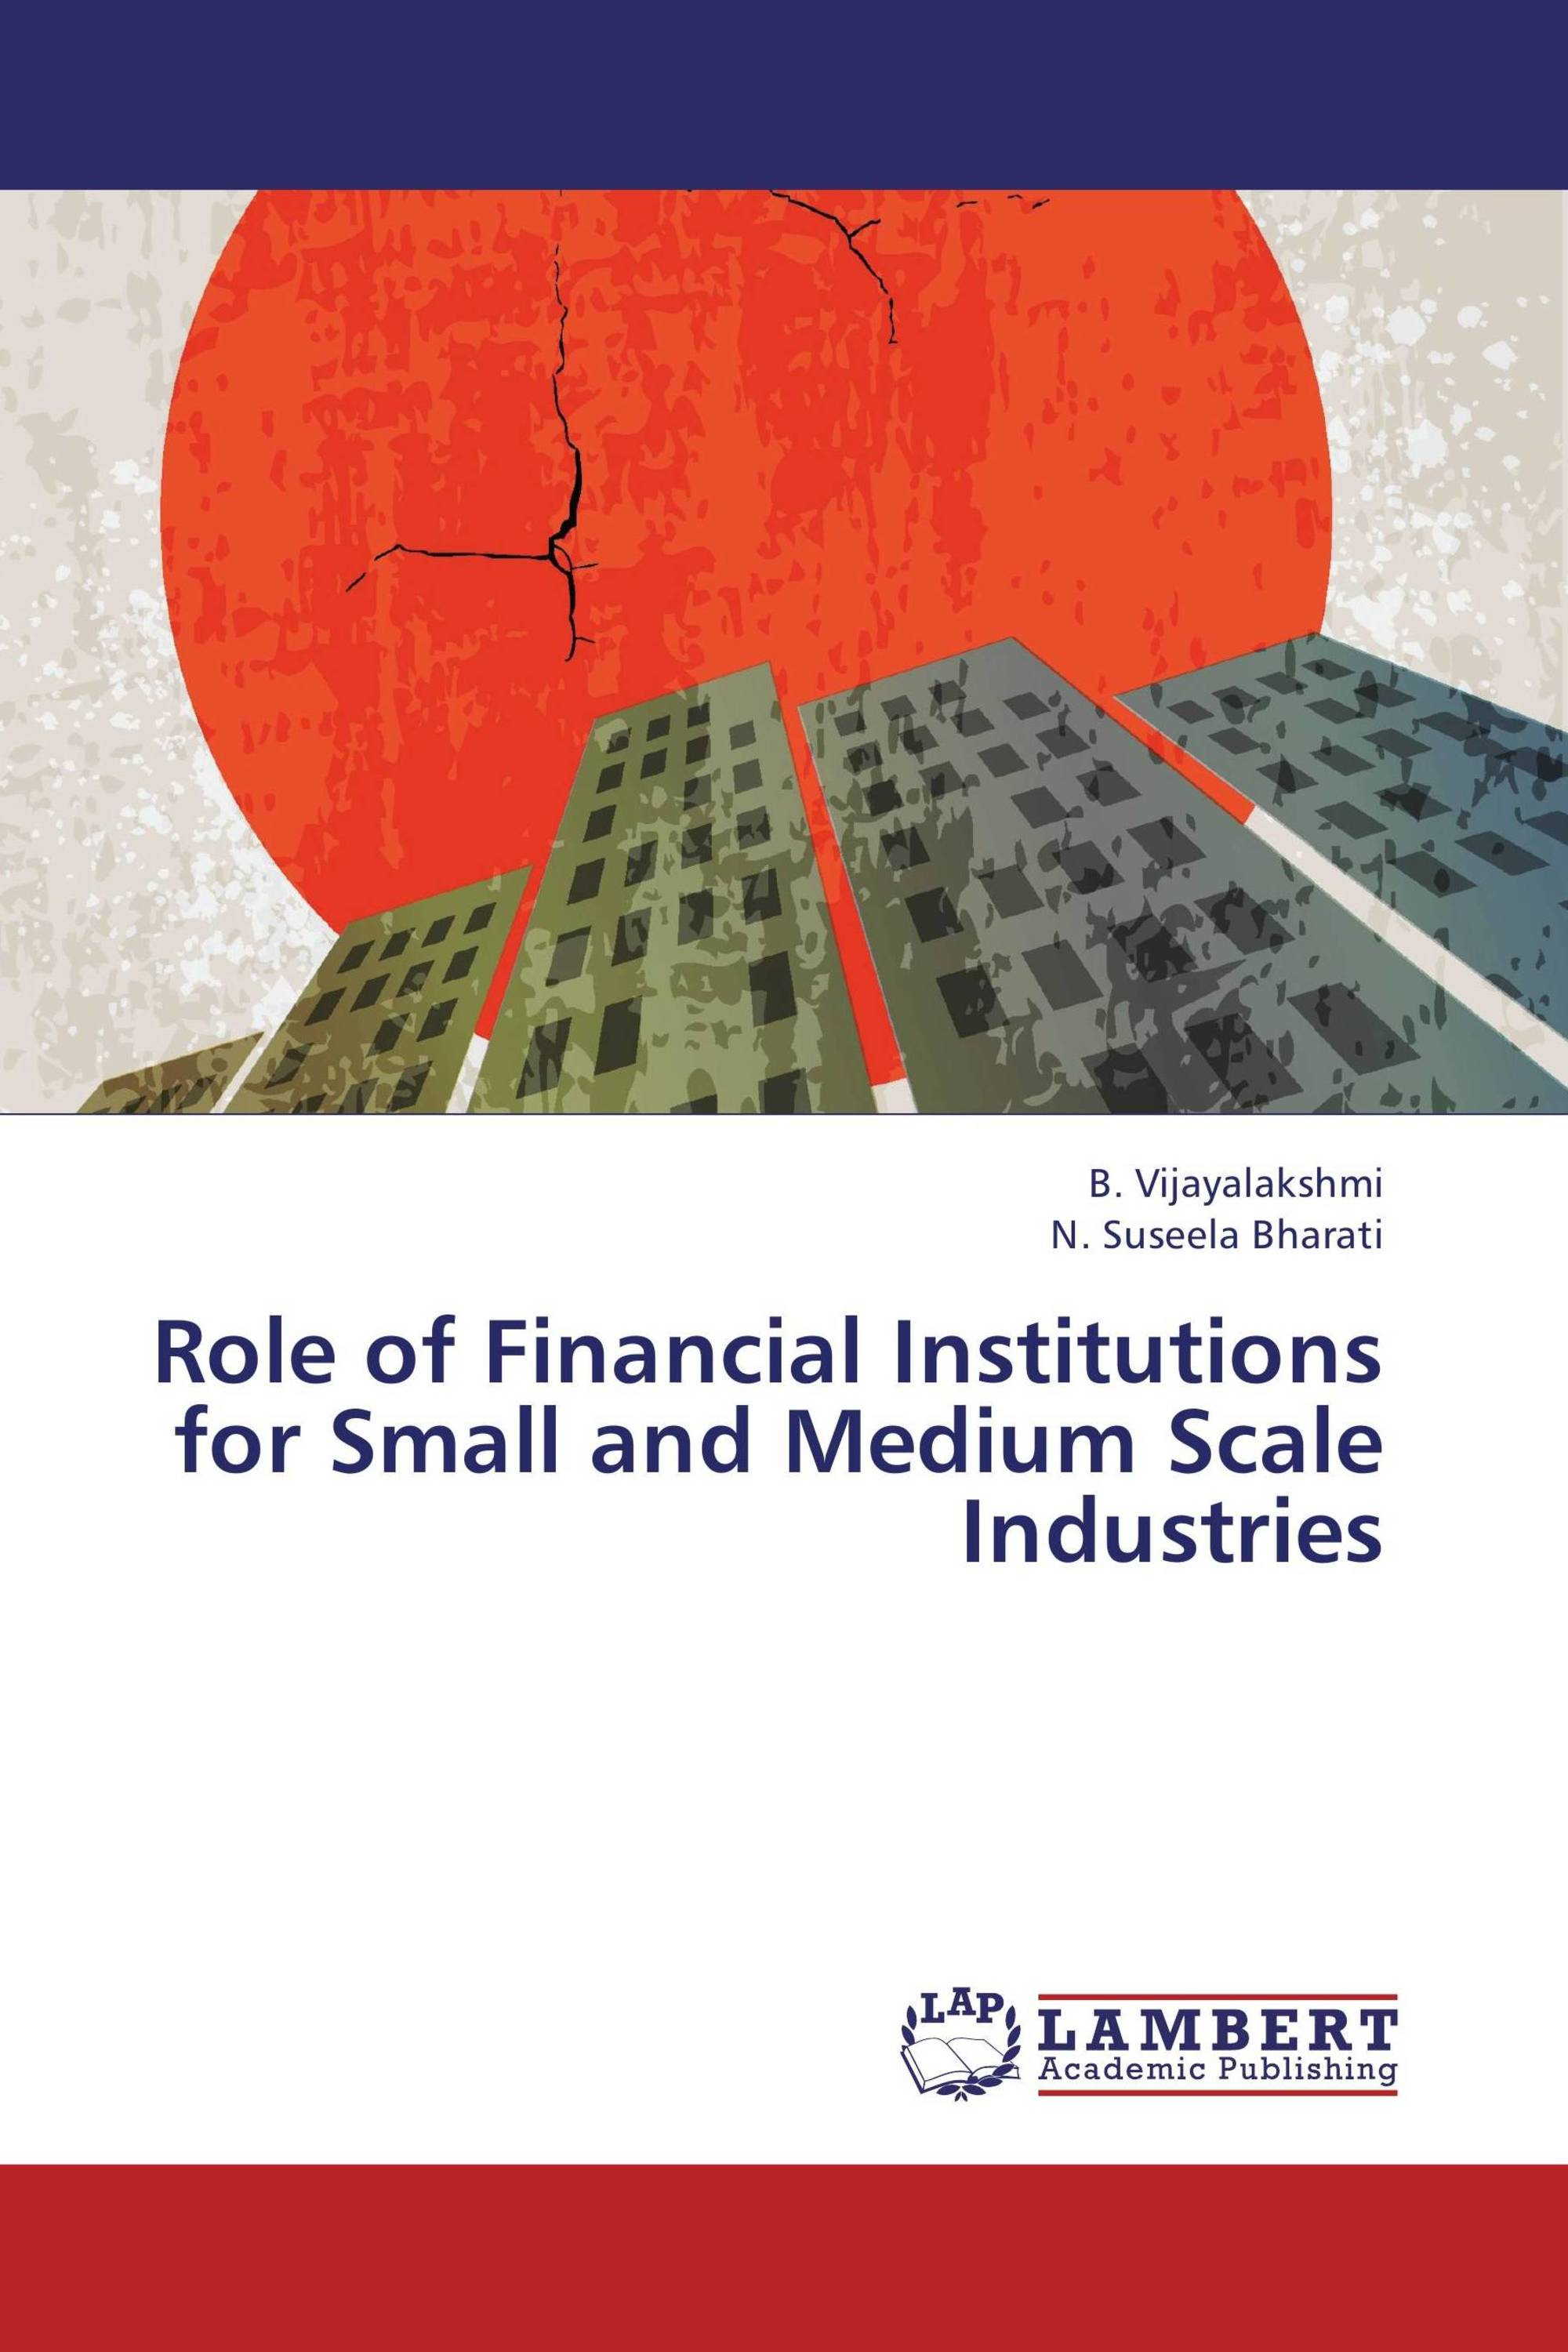 thesis on financial problems of small scale industries in india Financial reporting by small and medium scale enterprises in  equipment do not exceed six hundred thousand naira are referred to as small scale industries.